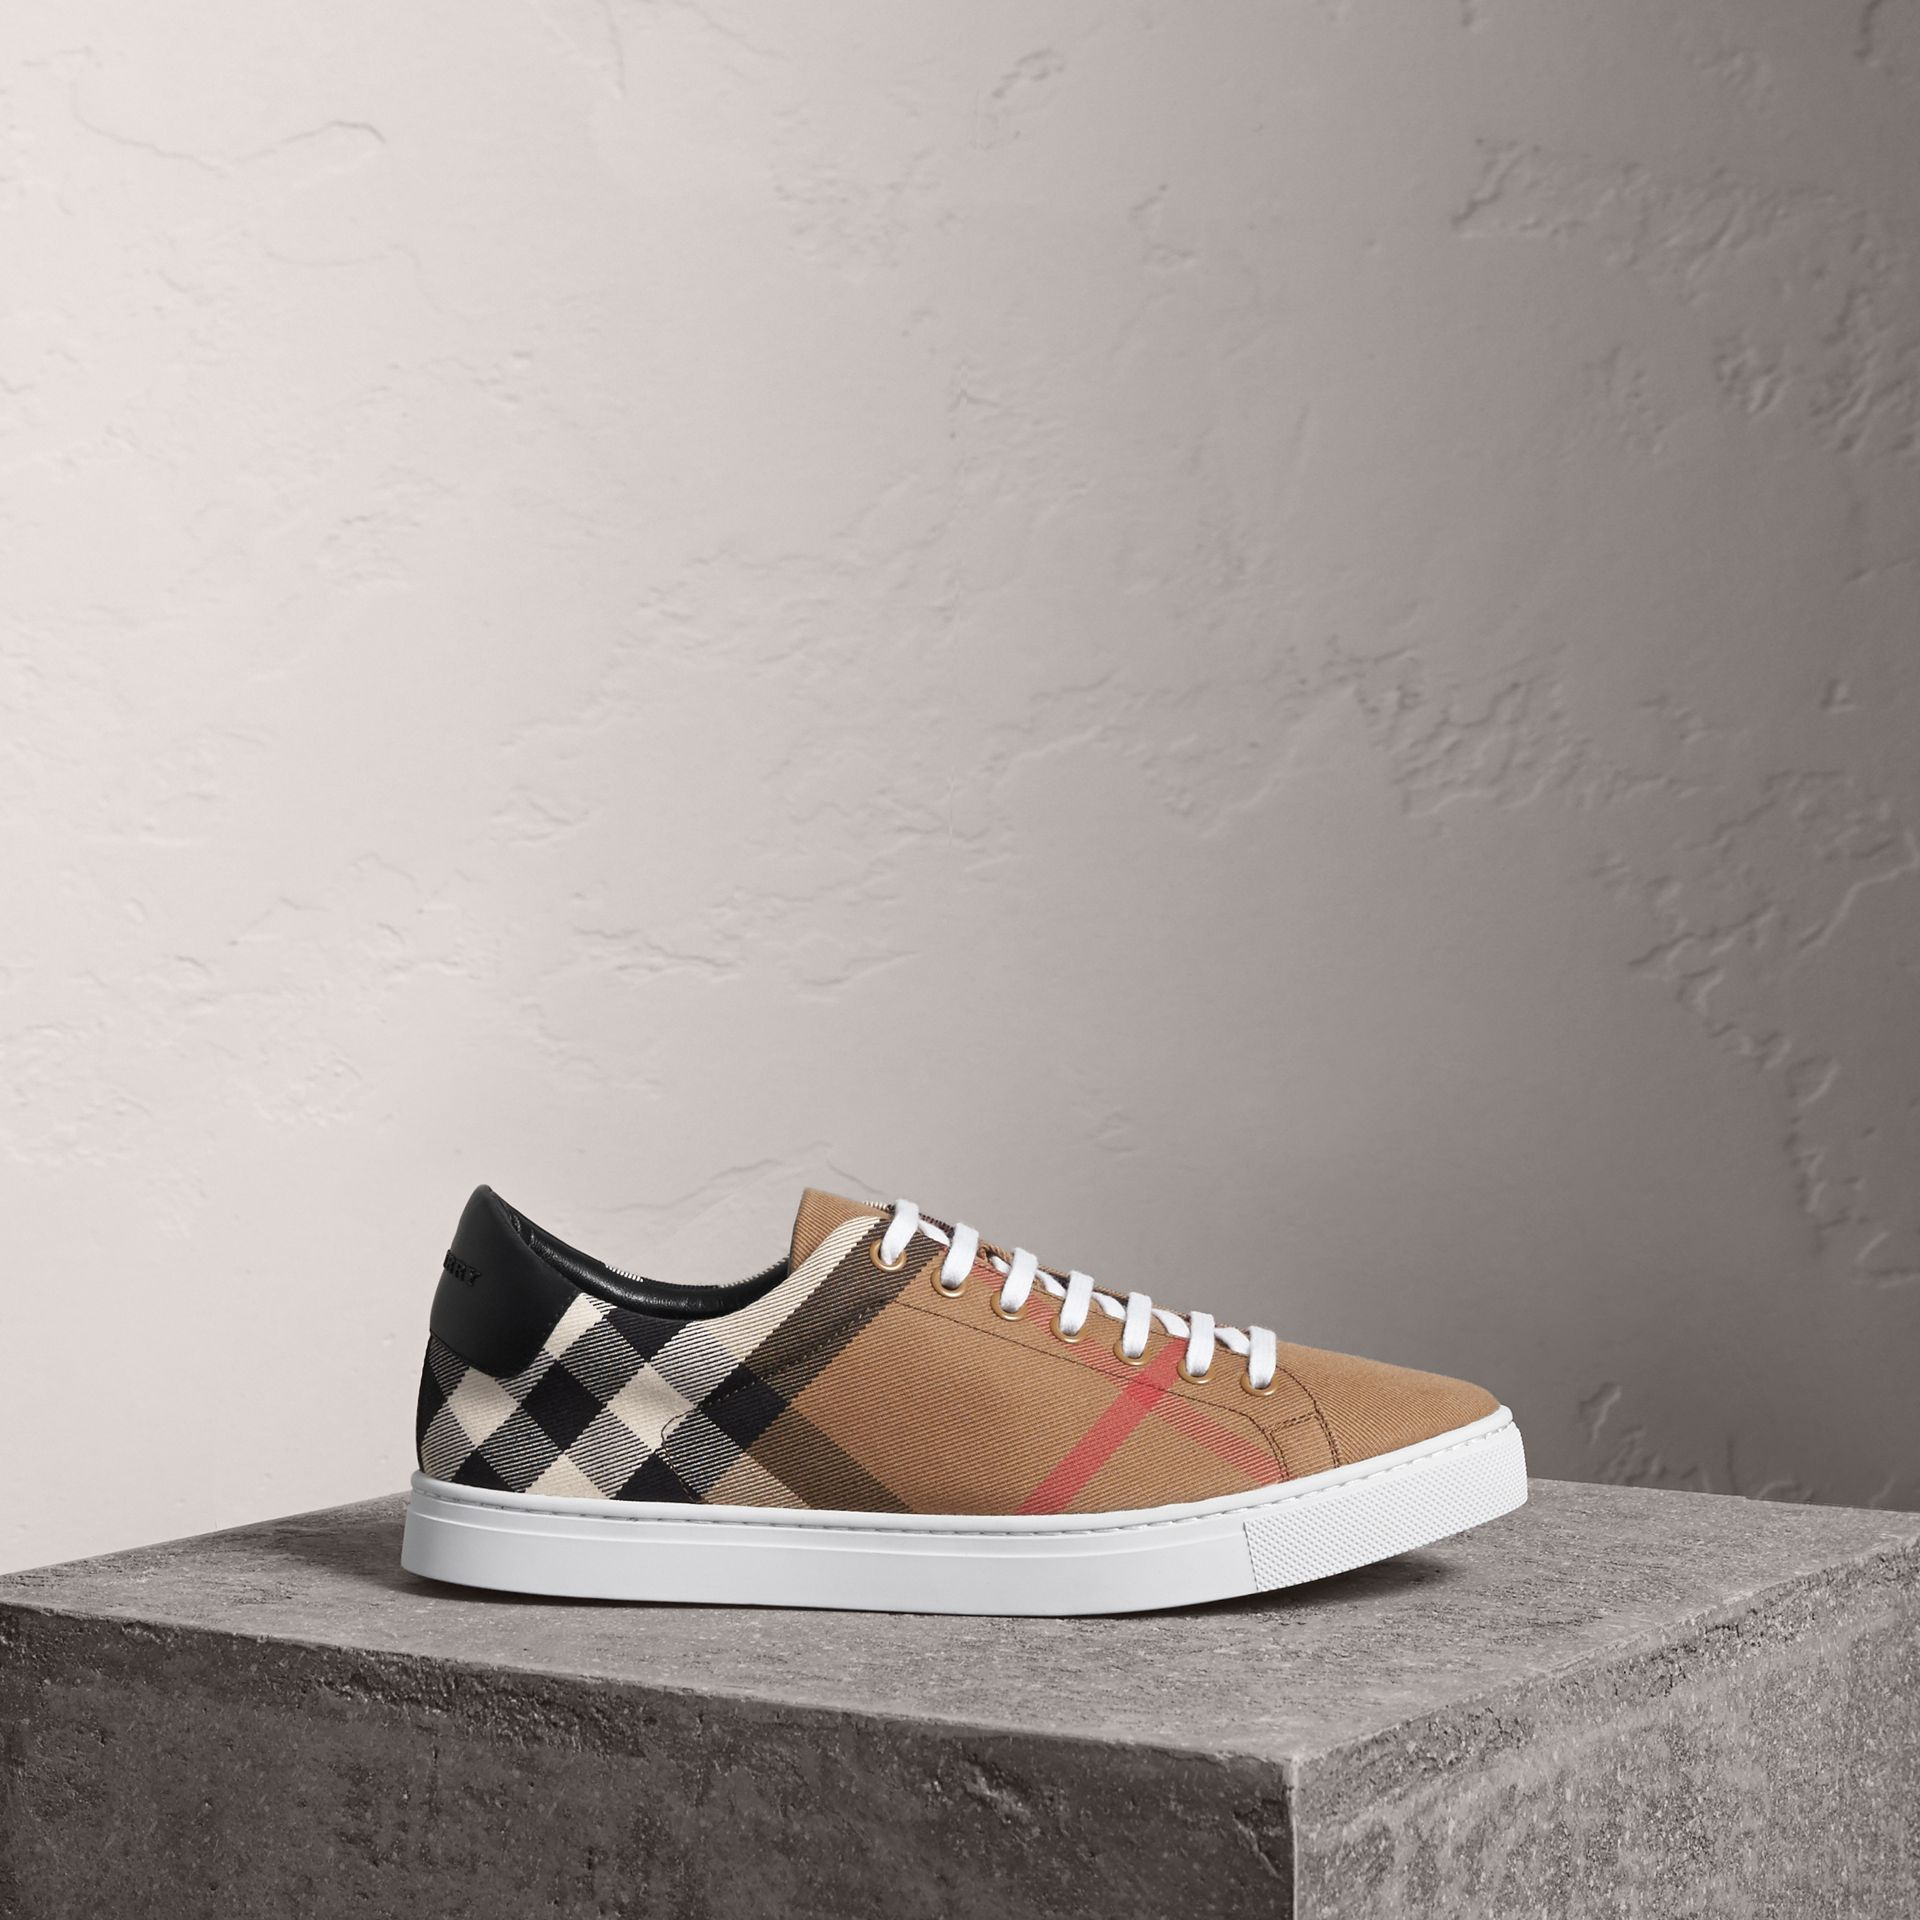 House Check and Leather Sneakers in Check/black - Men | Burberry Australia - gallery image 0